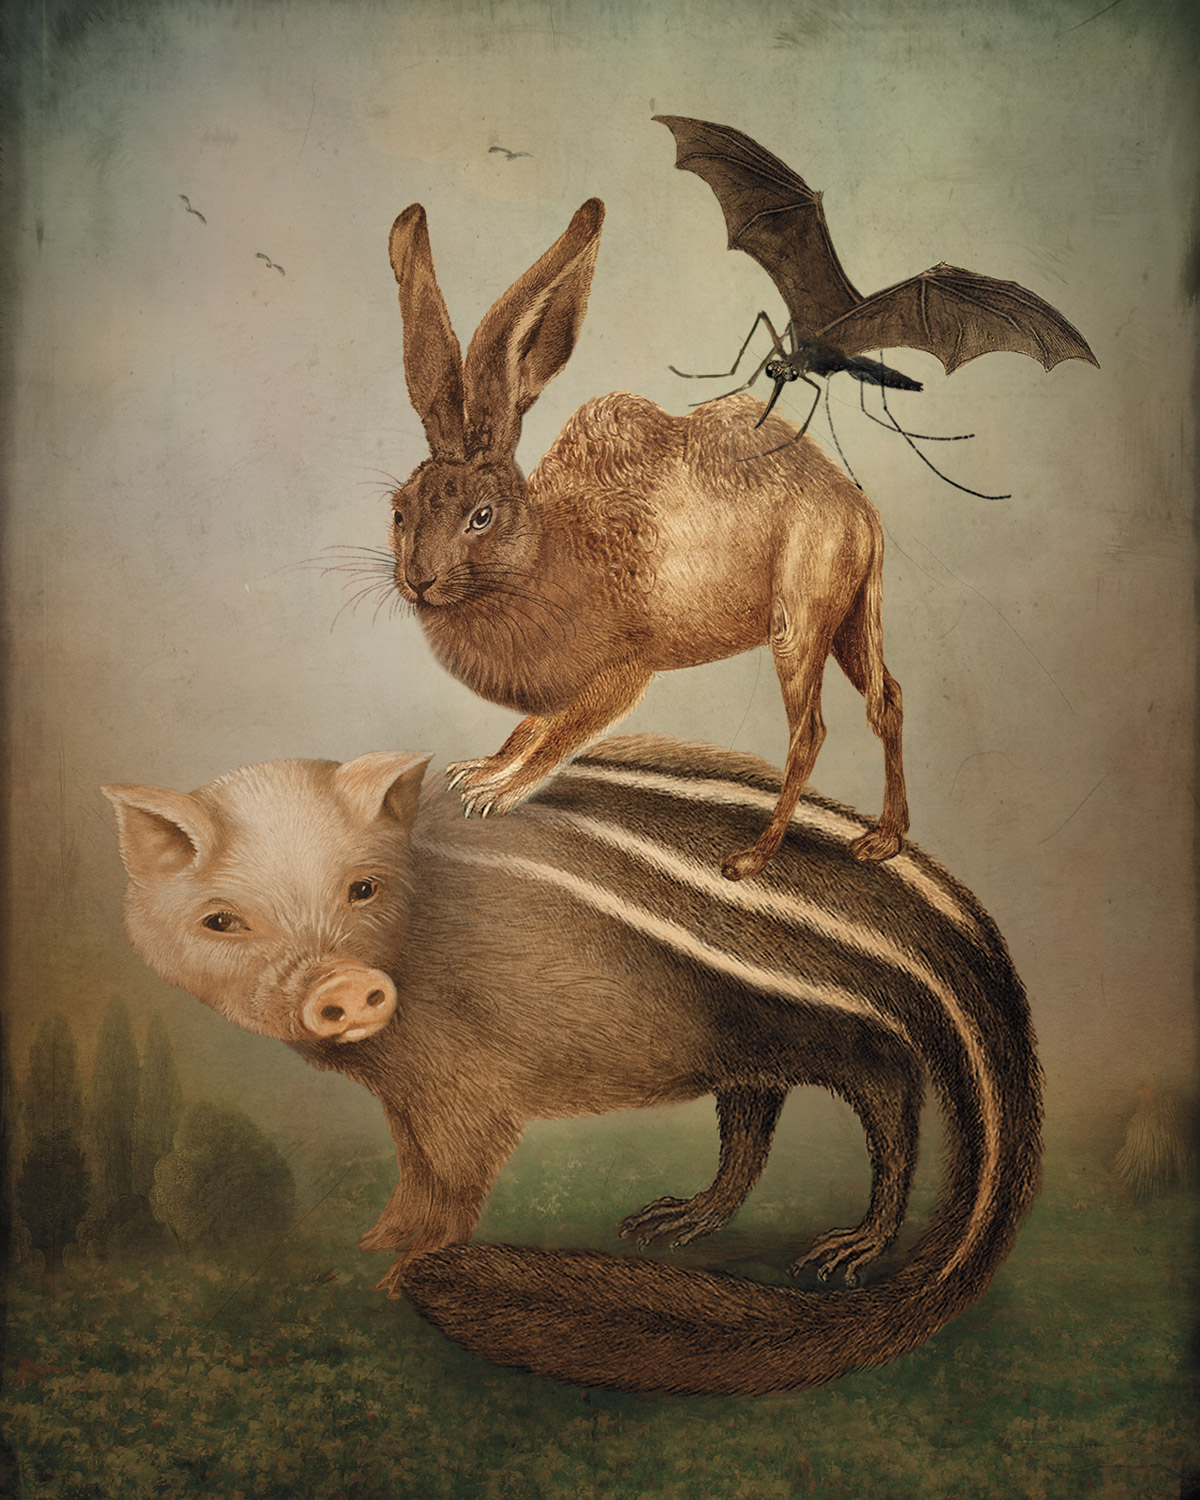 Illustration oof animals combined with other species